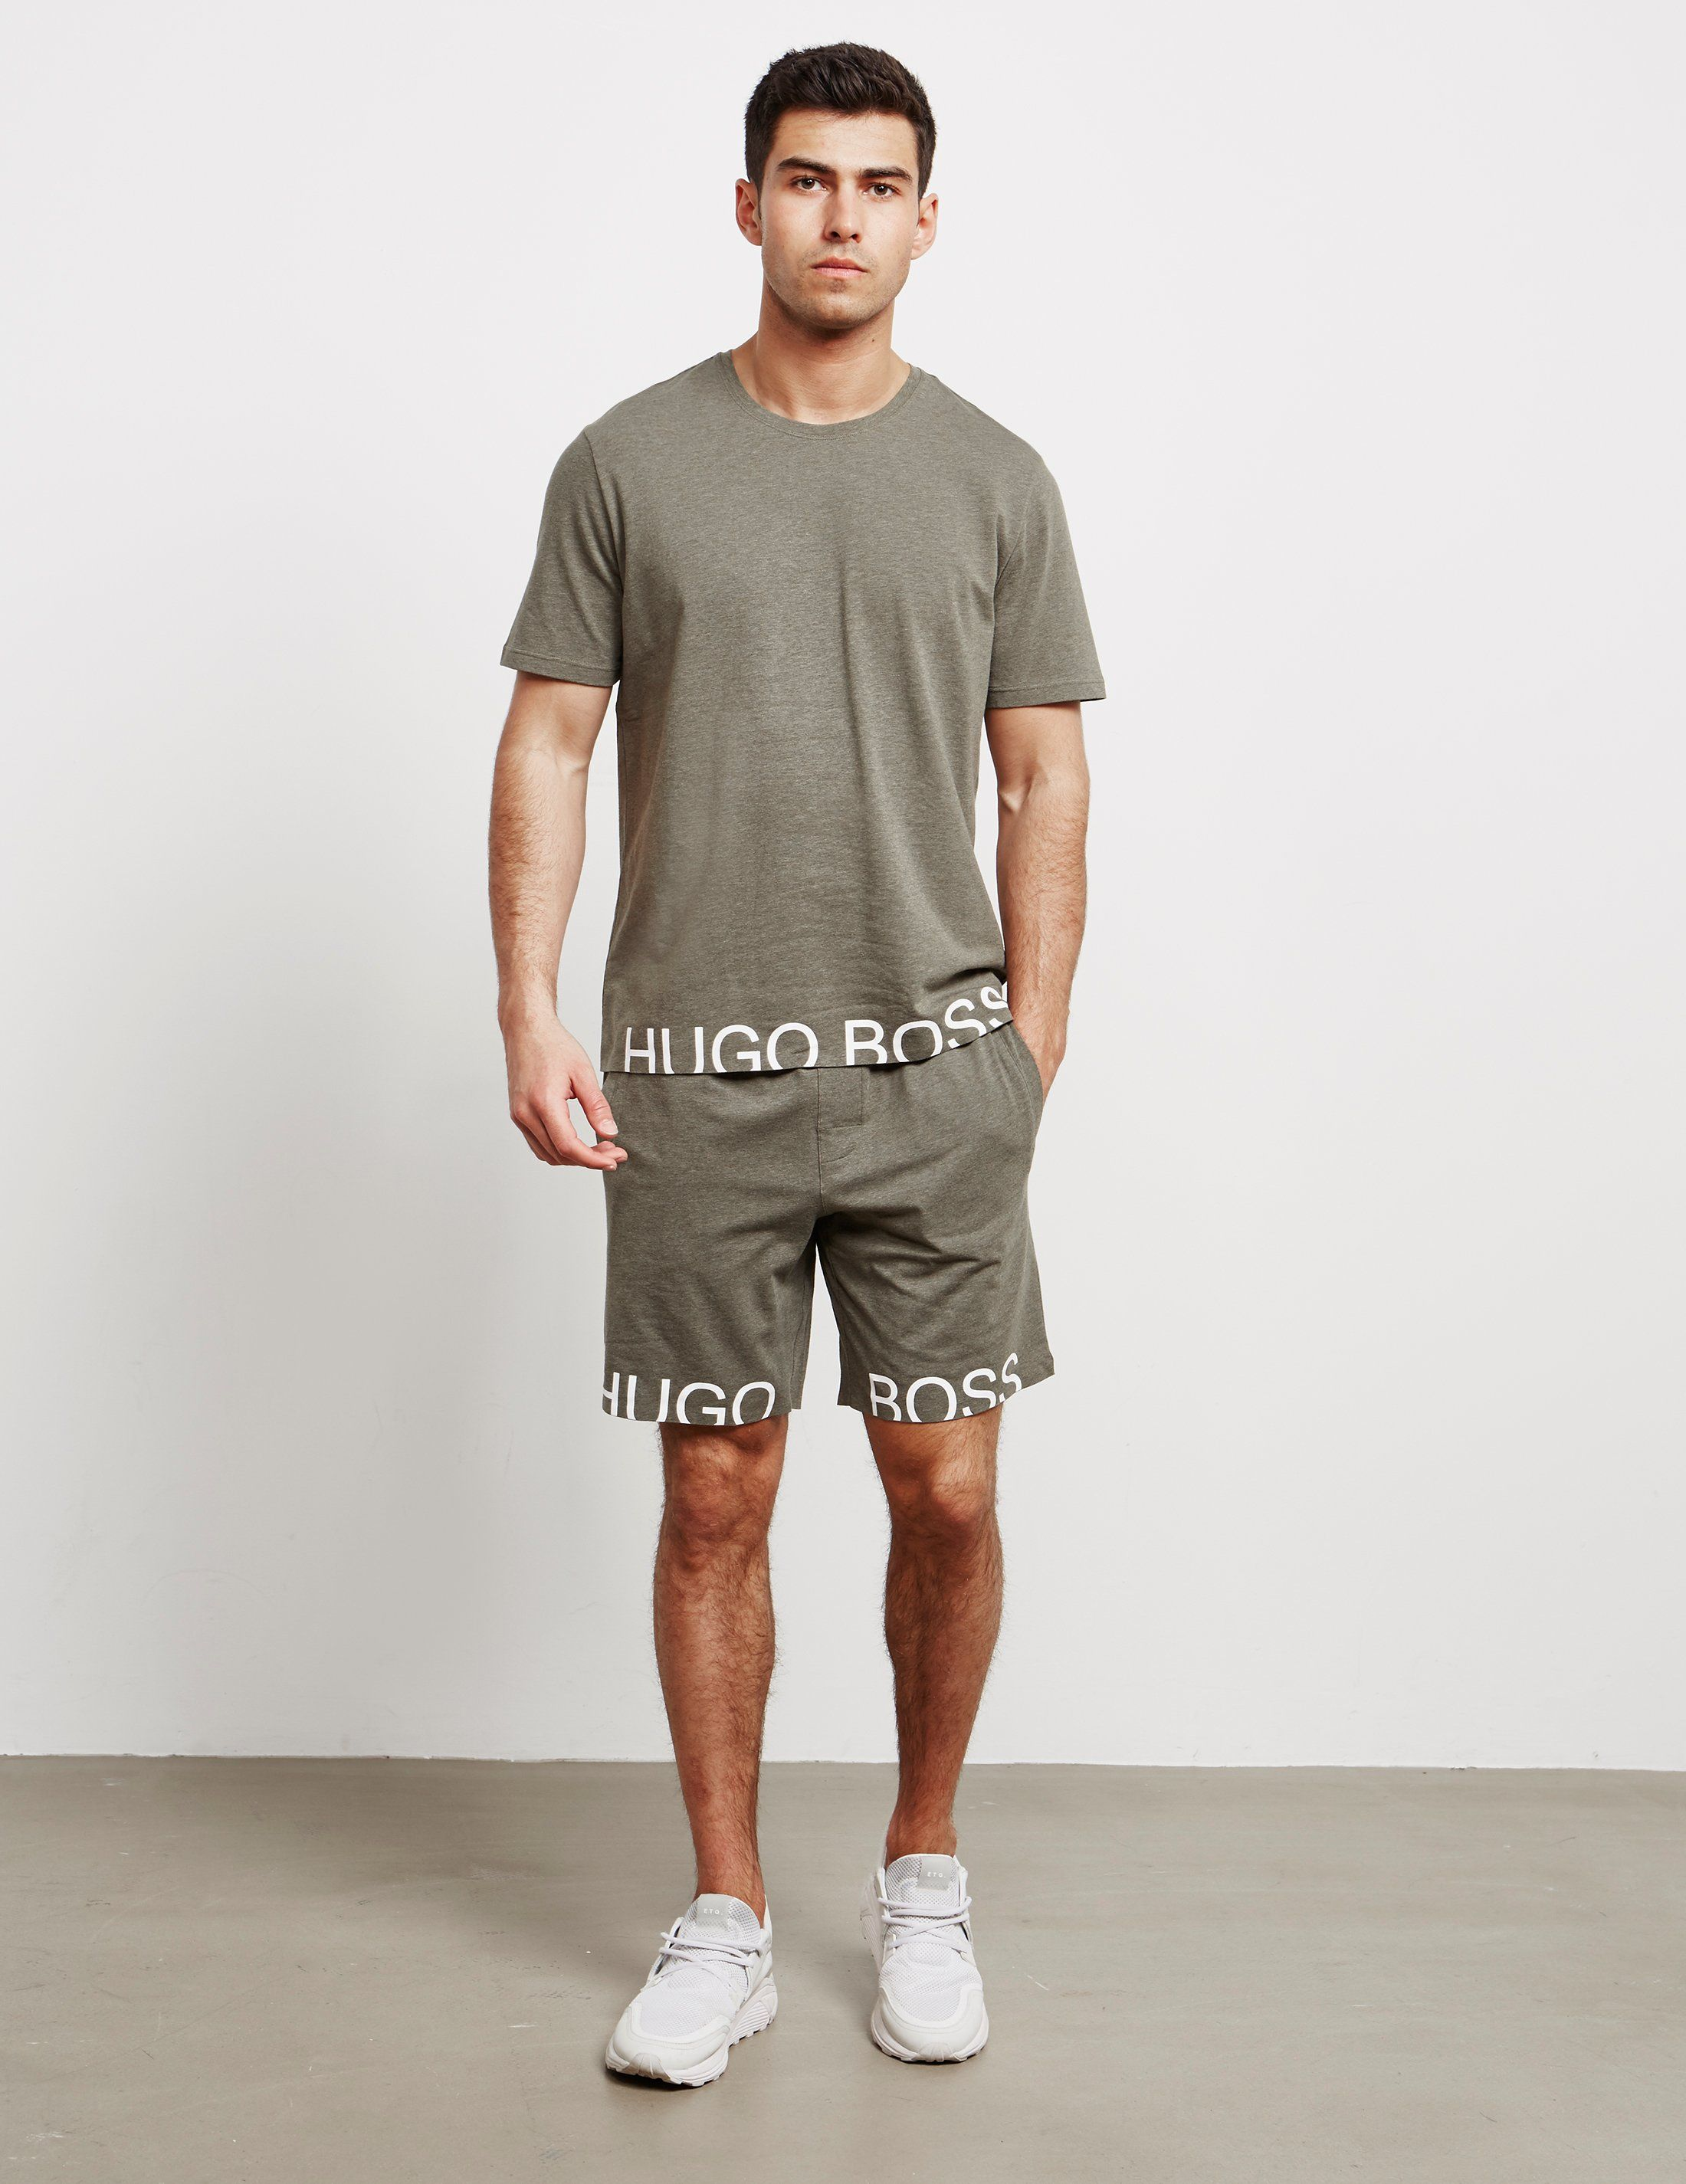 BOSS Hem Brand Shorts - Online Exclusive